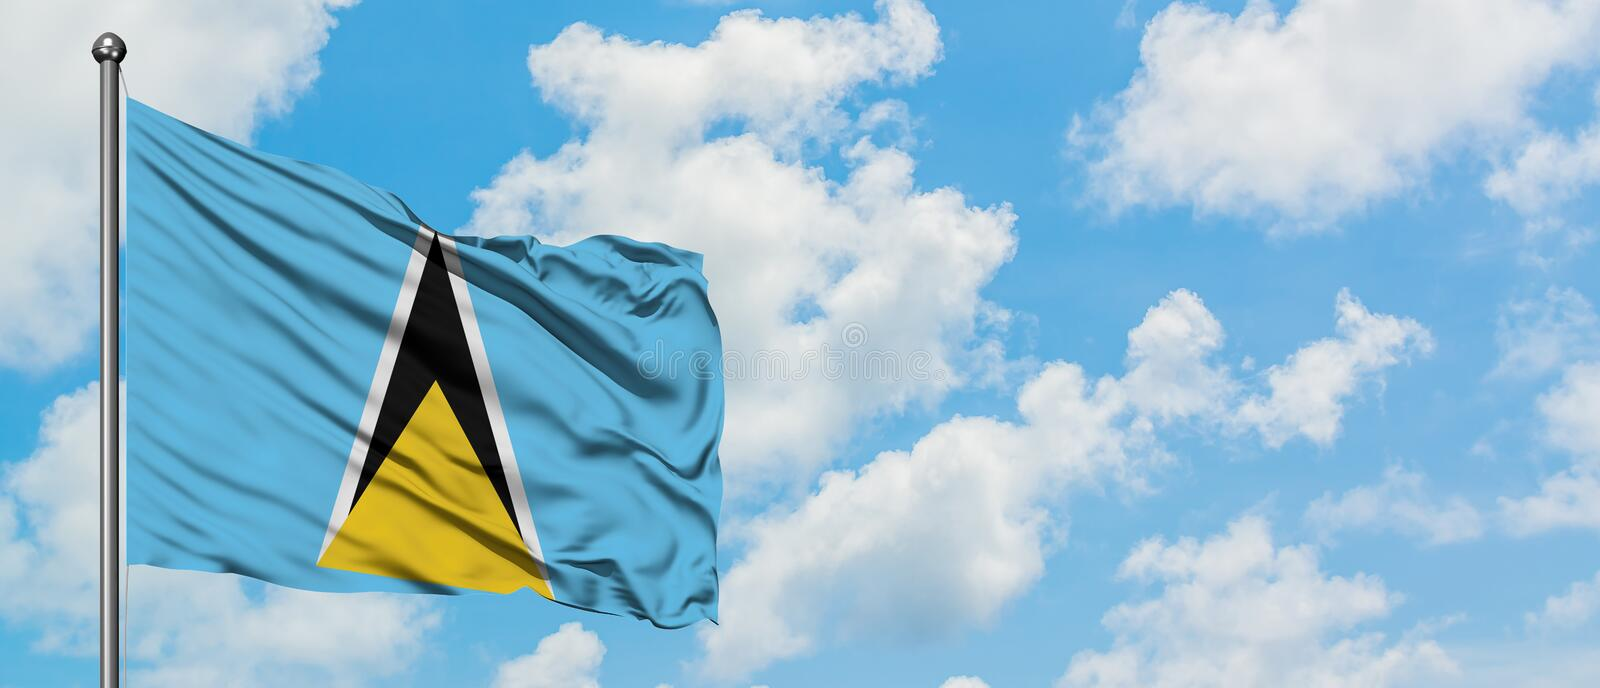 Saint Lucia flag waving in the wind against white cloudy blue sky. Diplomacy concept, international relations.  royalty free stock image